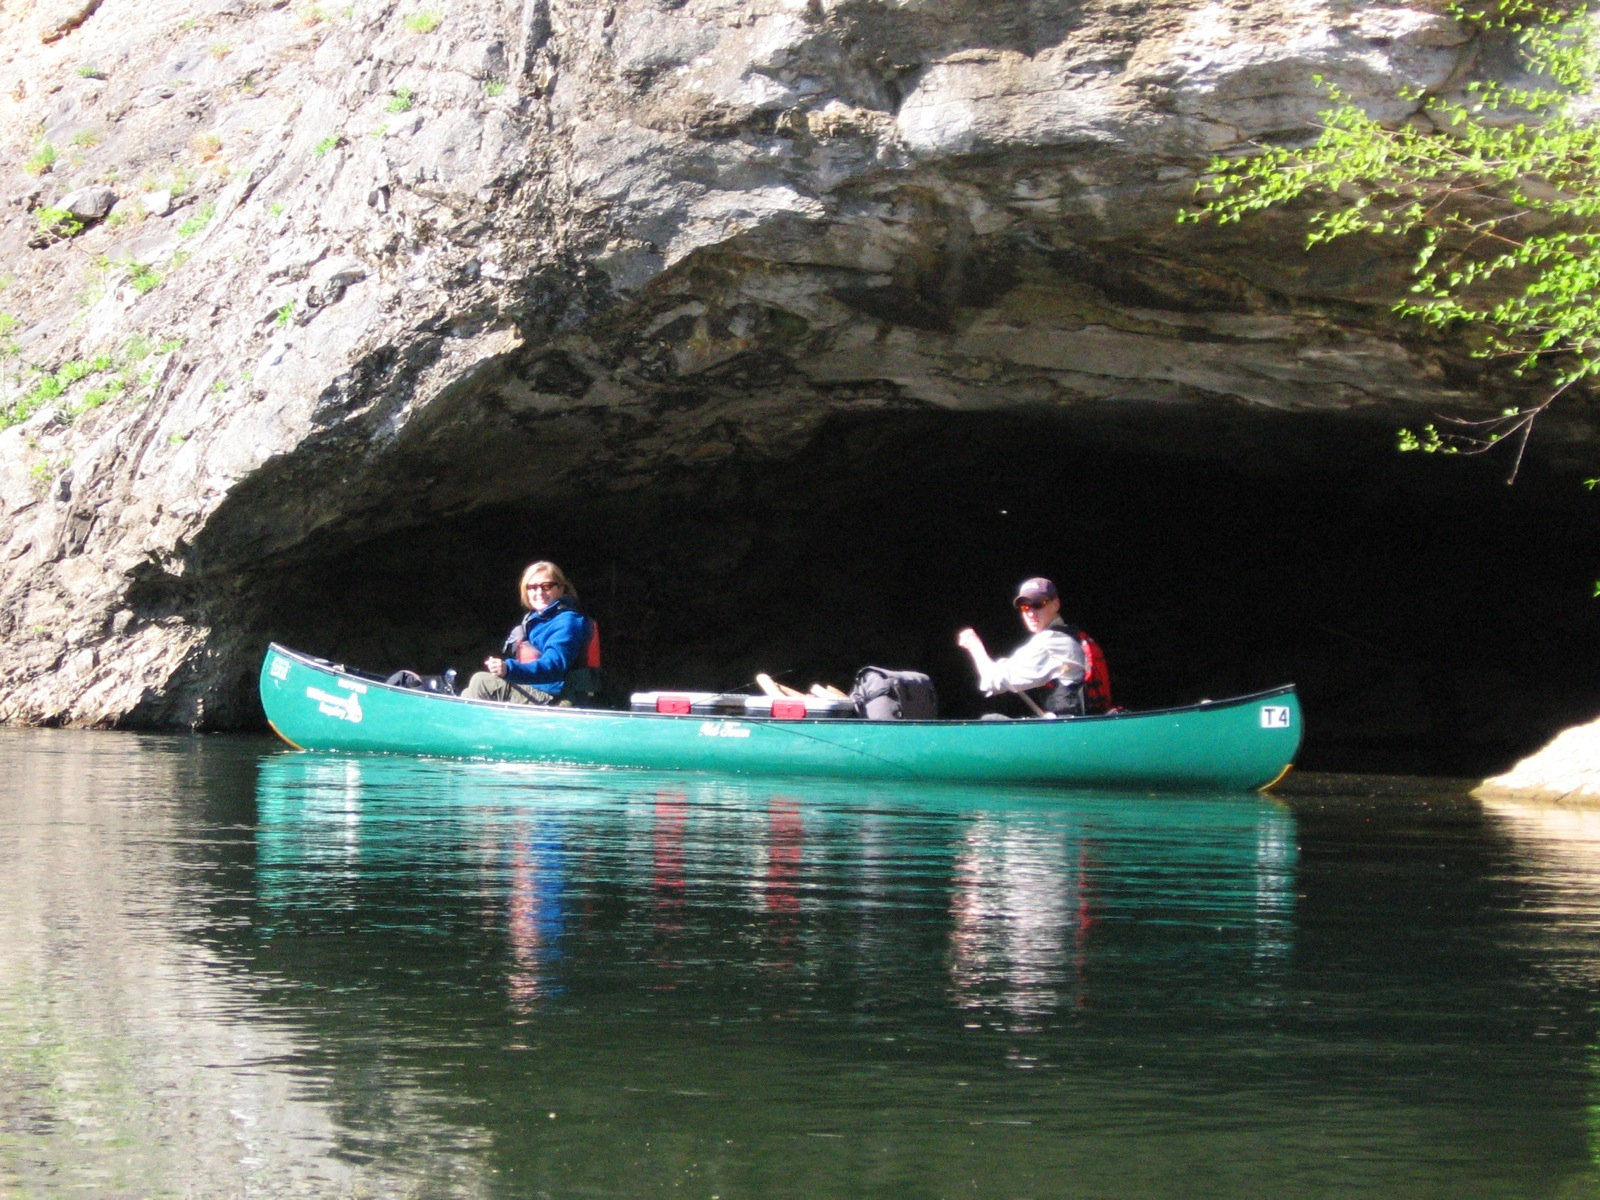 Two canoeists in a green tandem canoe paddle past a river cave on their way to Hasty campsite in the Ozarks.